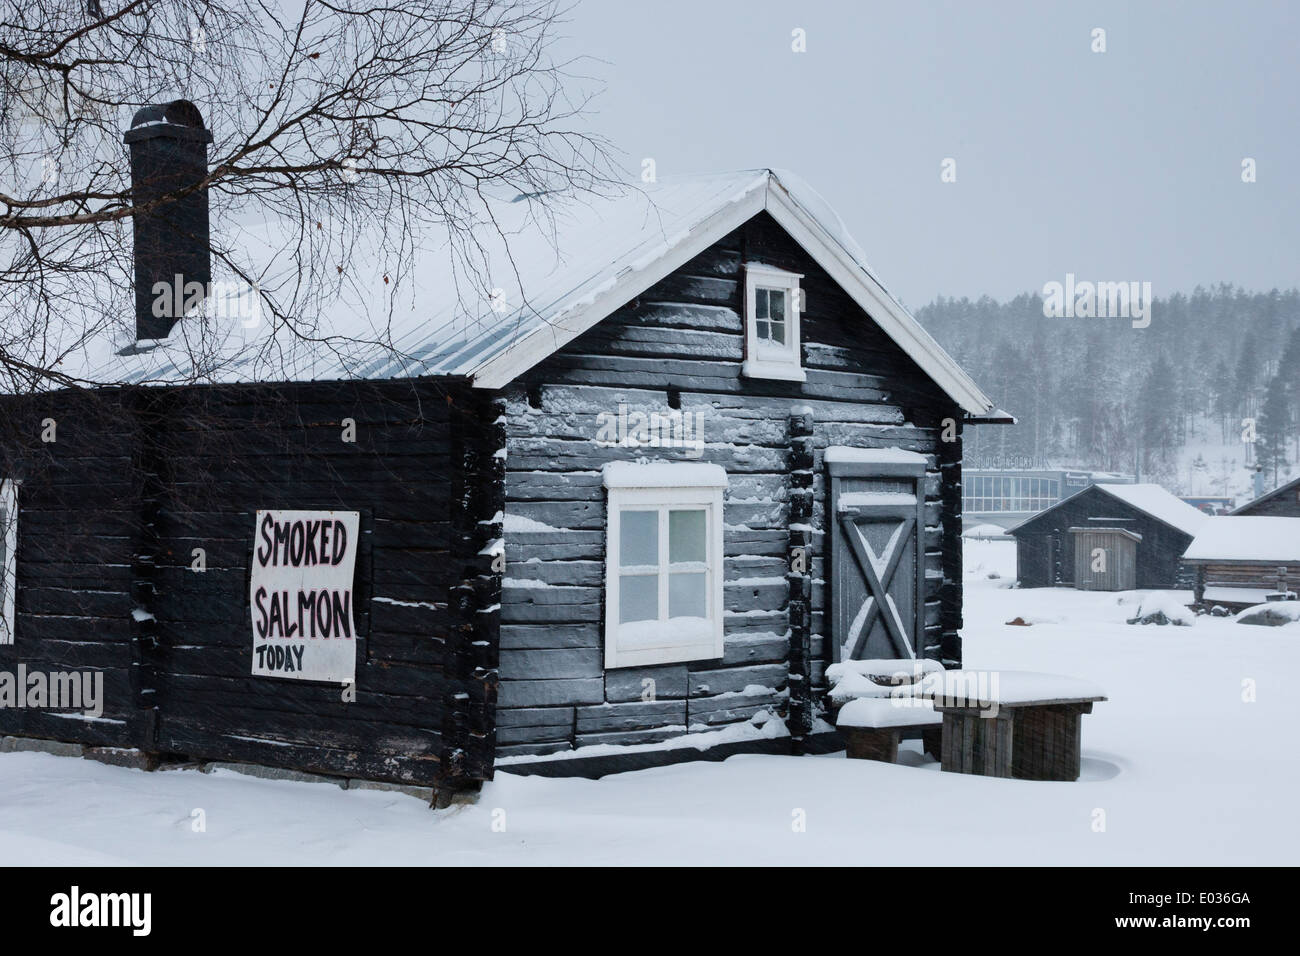 """JAVRE, SWEDEN Cabin with """"smoked salmon"""" sign. Stock Photo"""